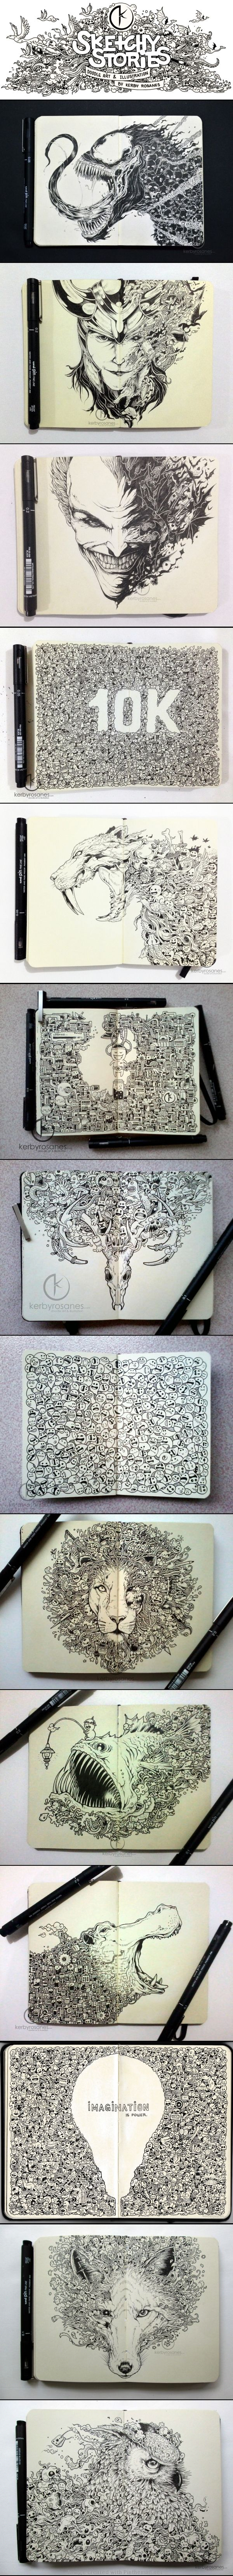 Insanely detailed and precise pen and ink moleskine pages by Kerby Rosanes. THIS IS SO AMAZING